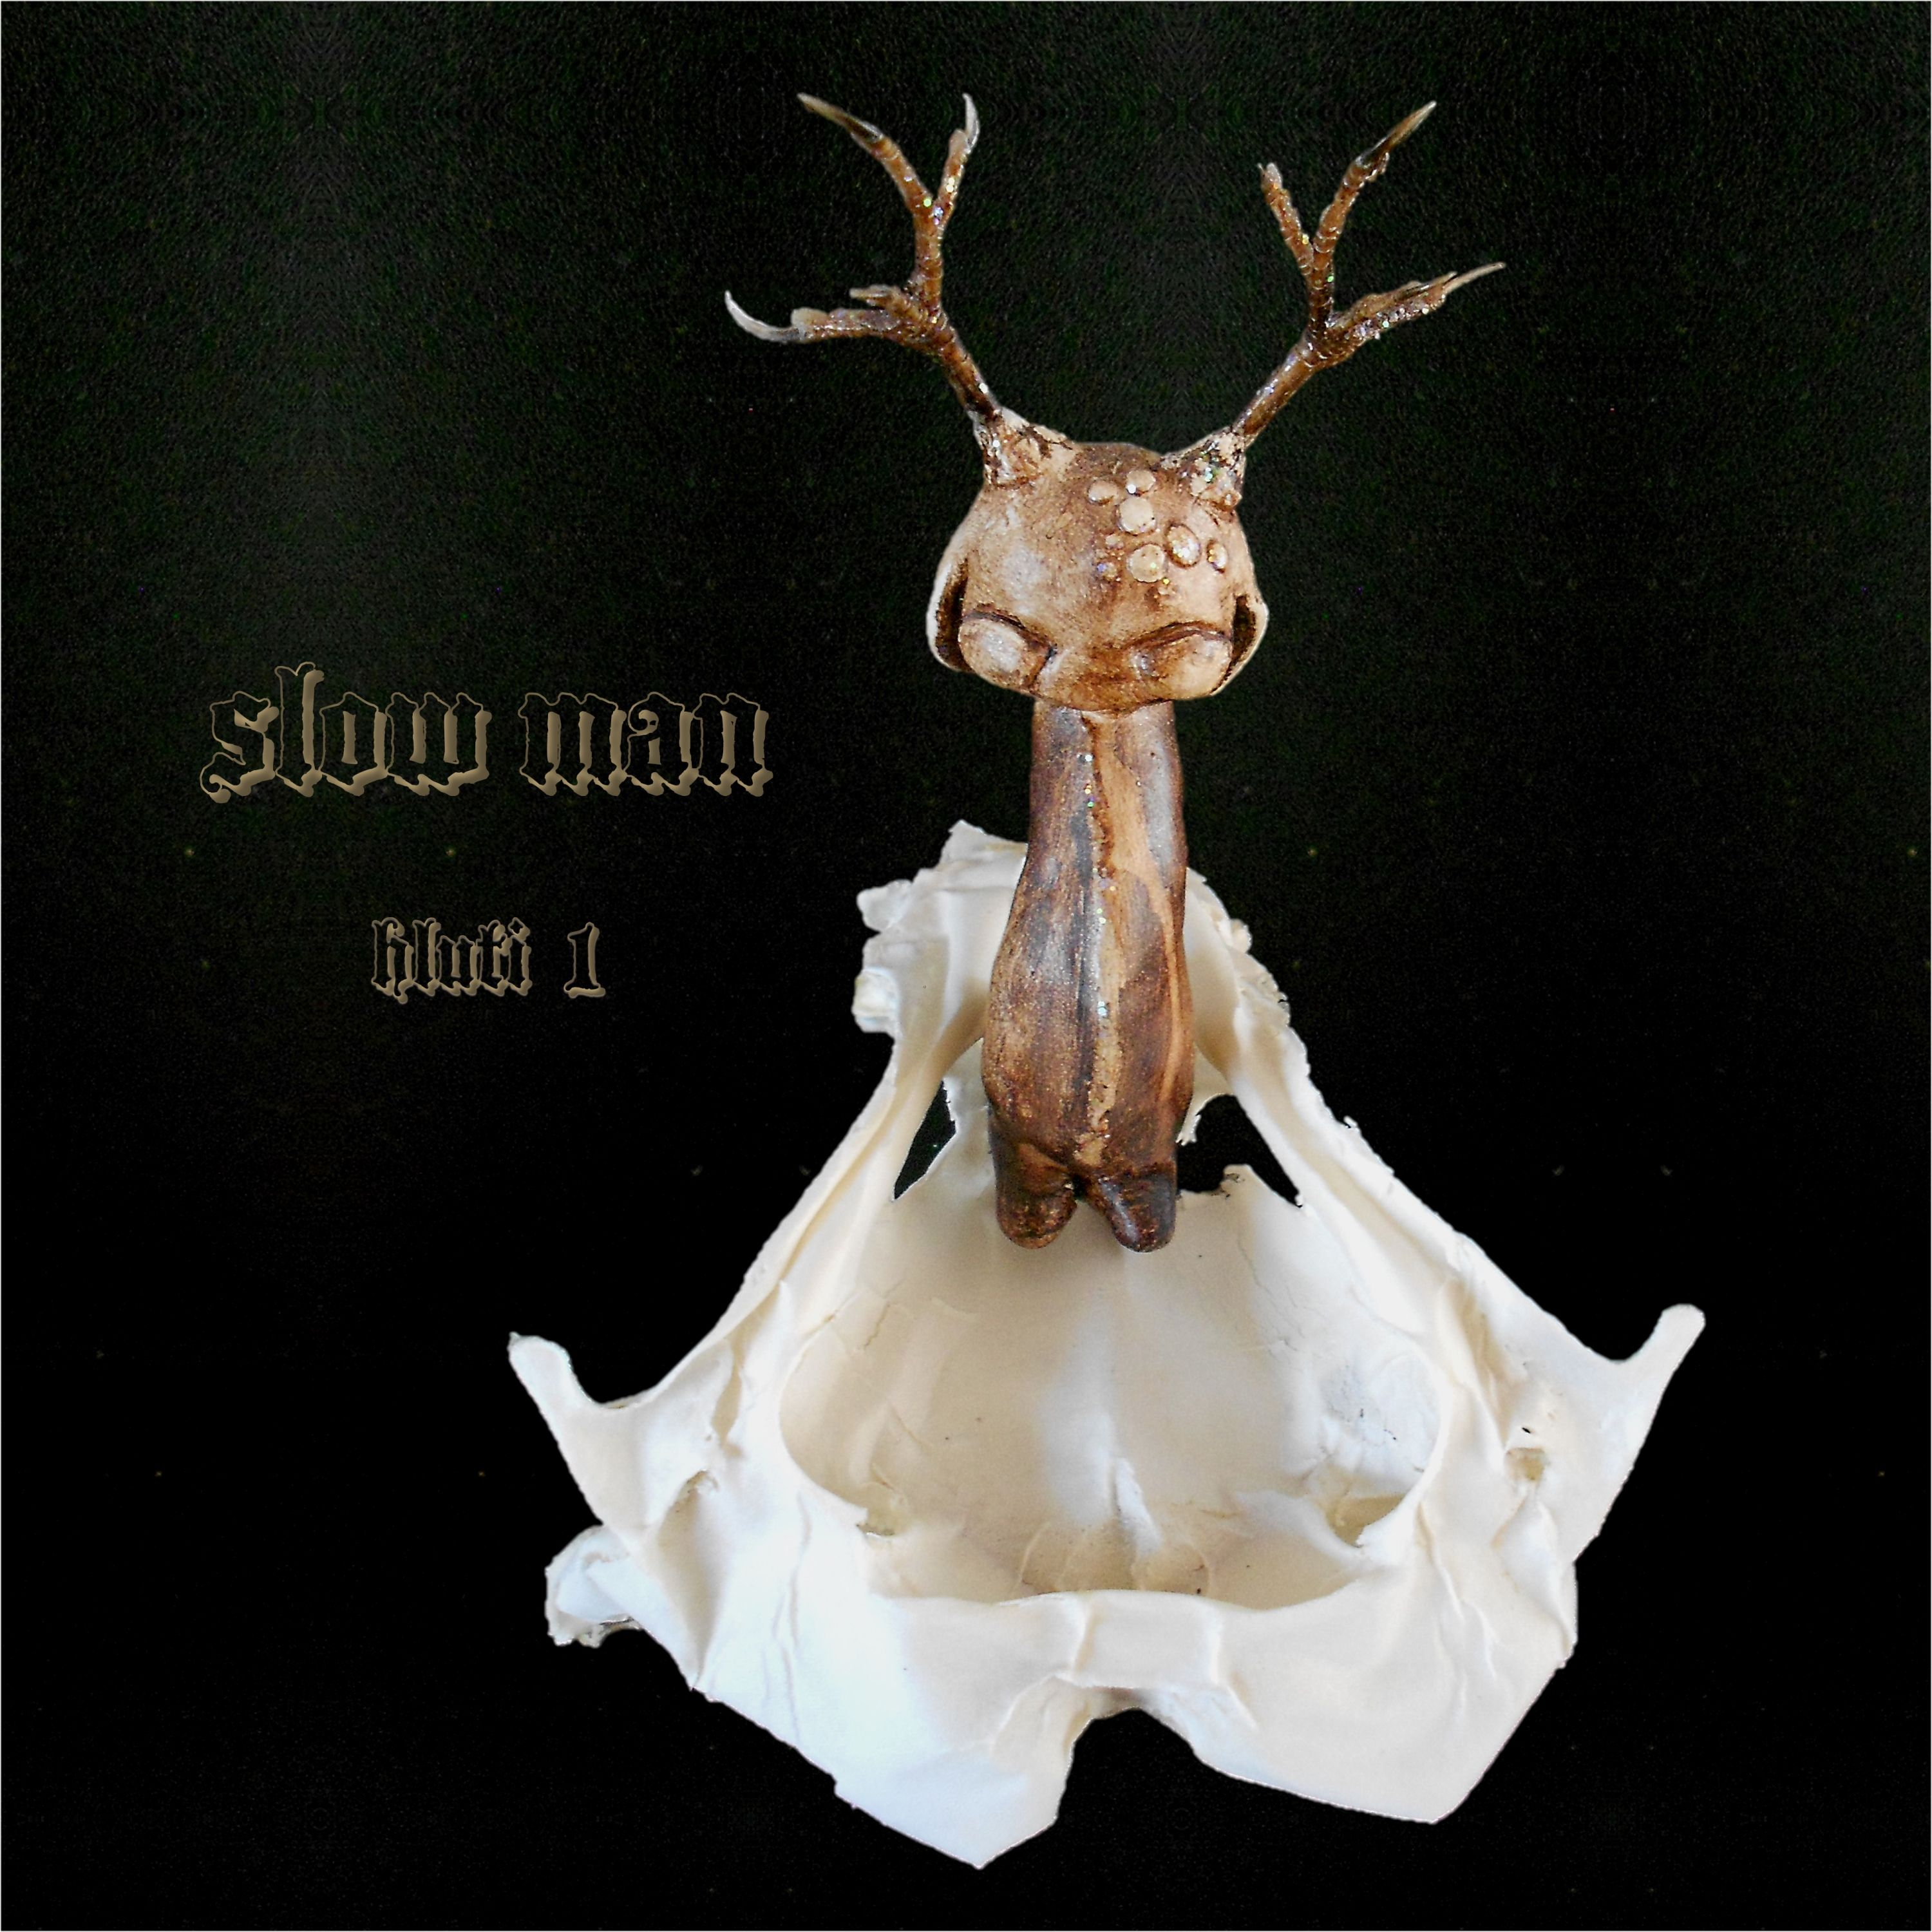 Slow Man - Hluti 1 front cover